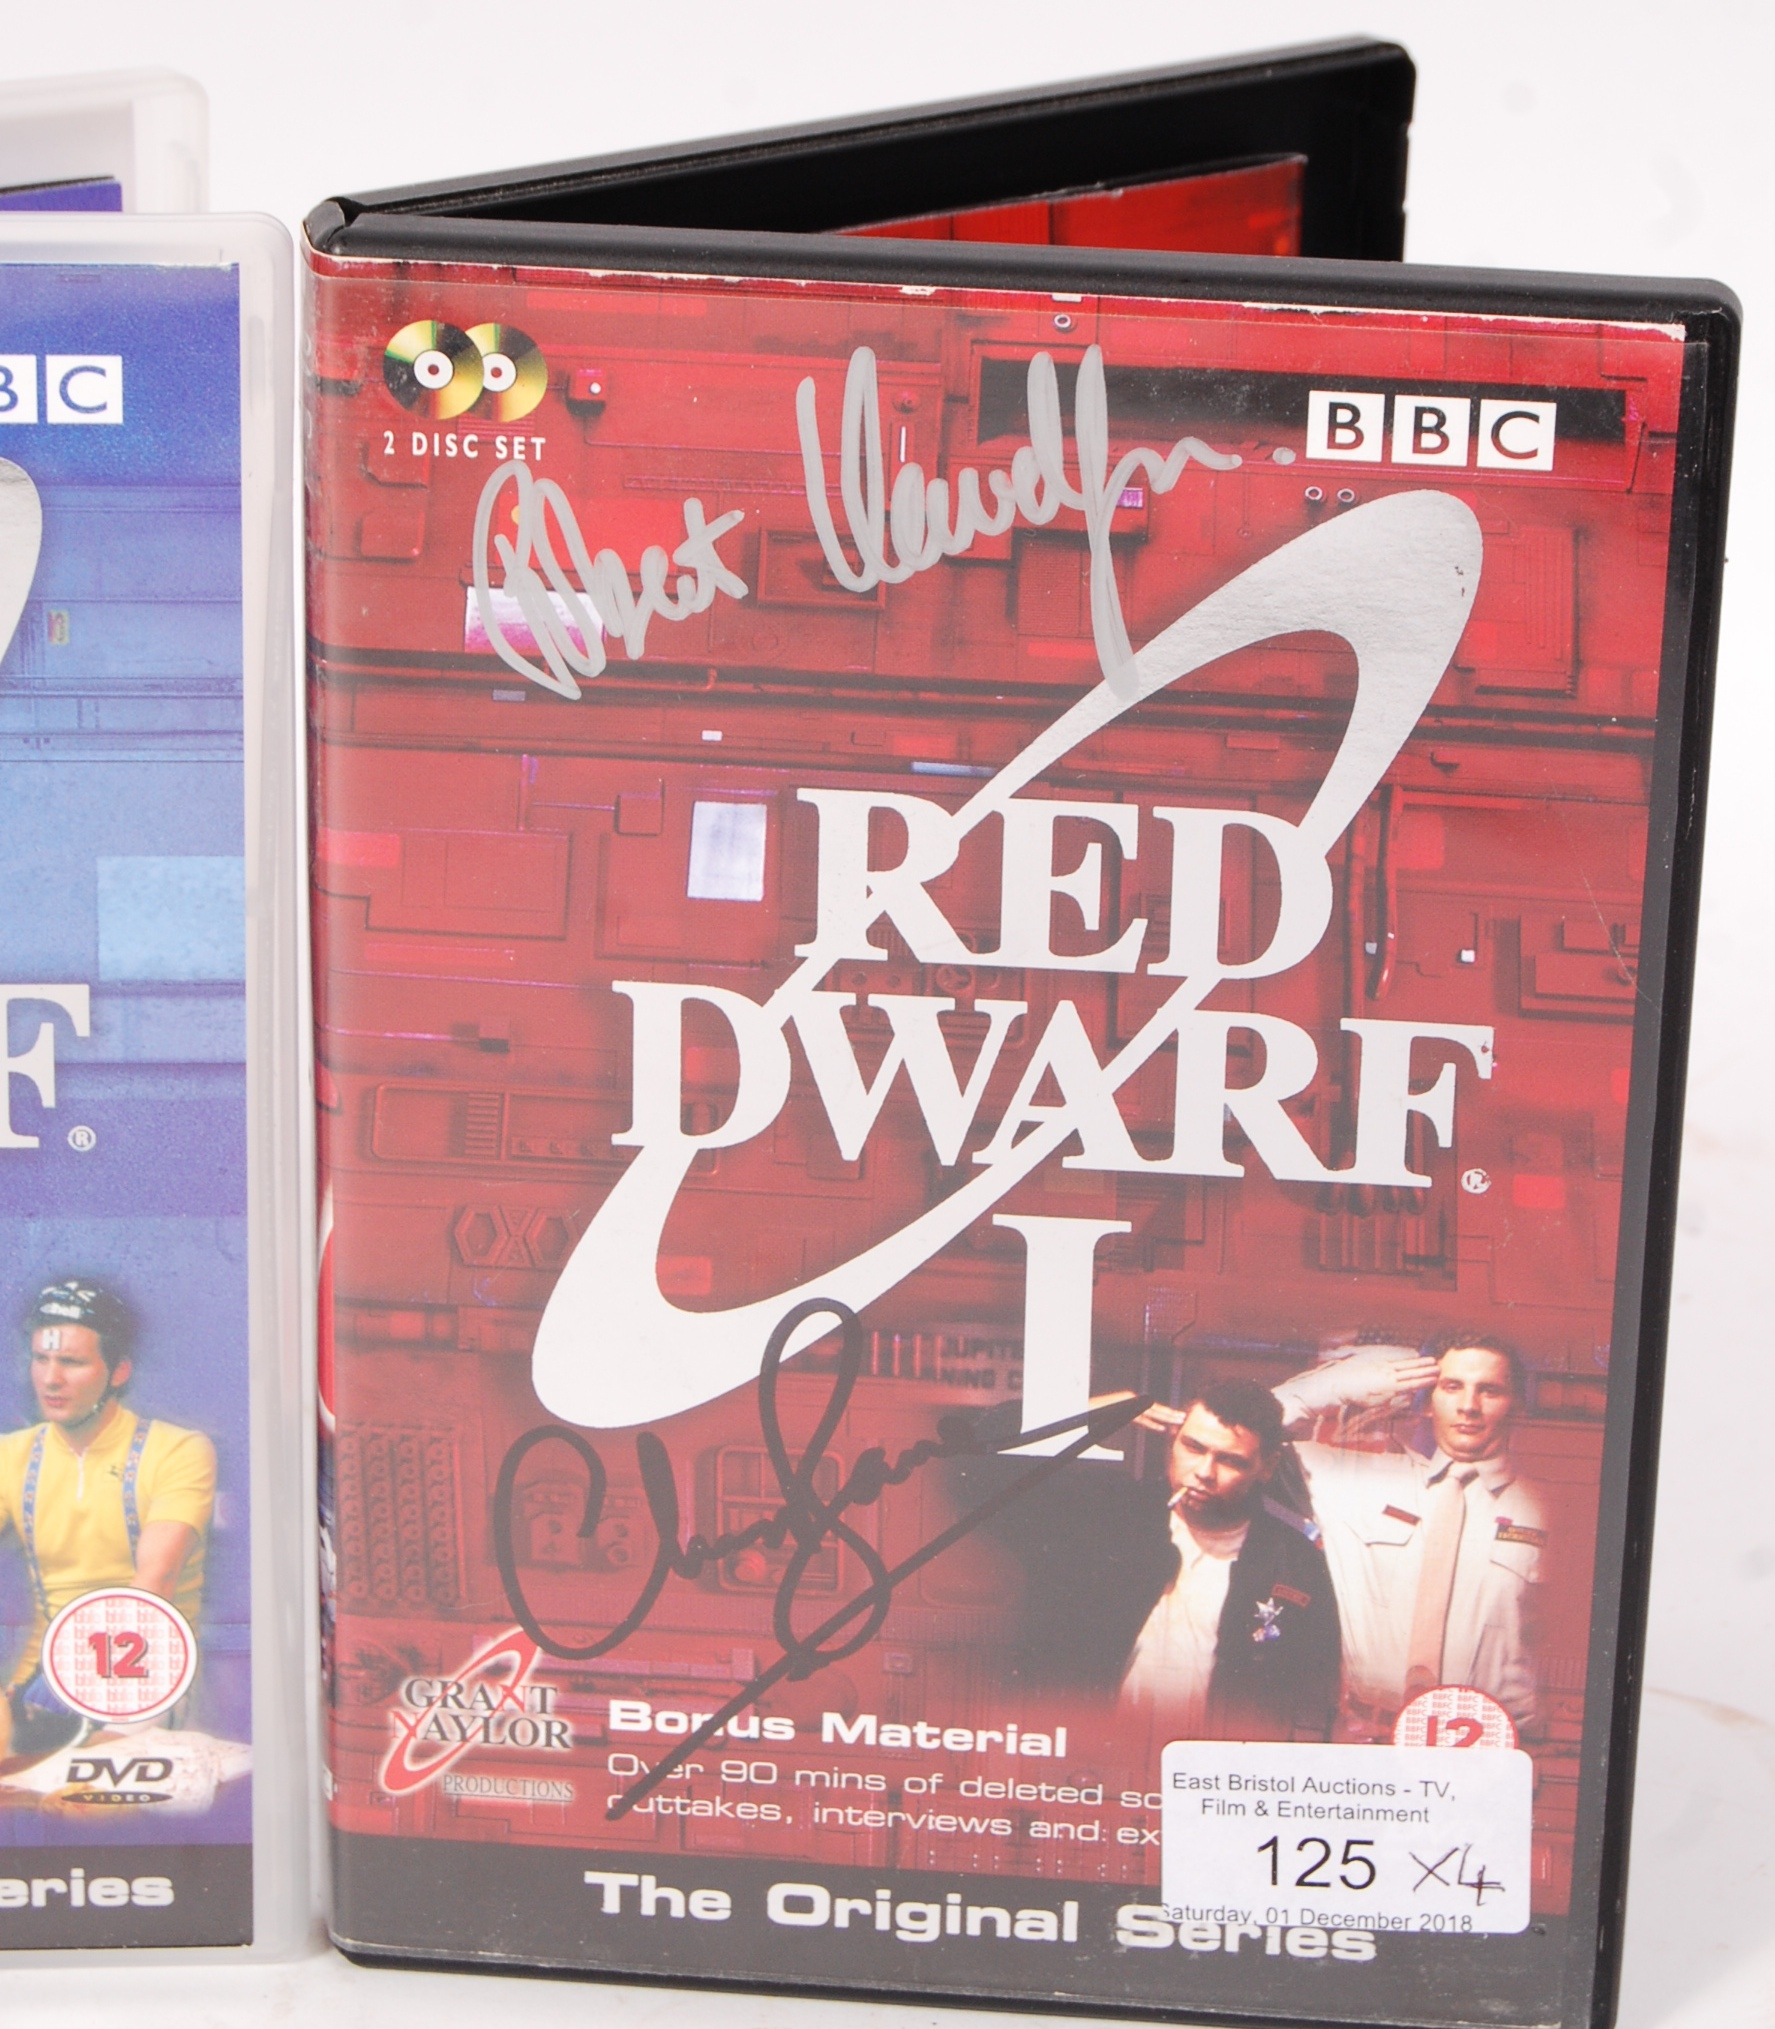 RED DWARF SERIES 1-4 AUTOGRAPHED DVD COLLECTION - Image 2 of 5